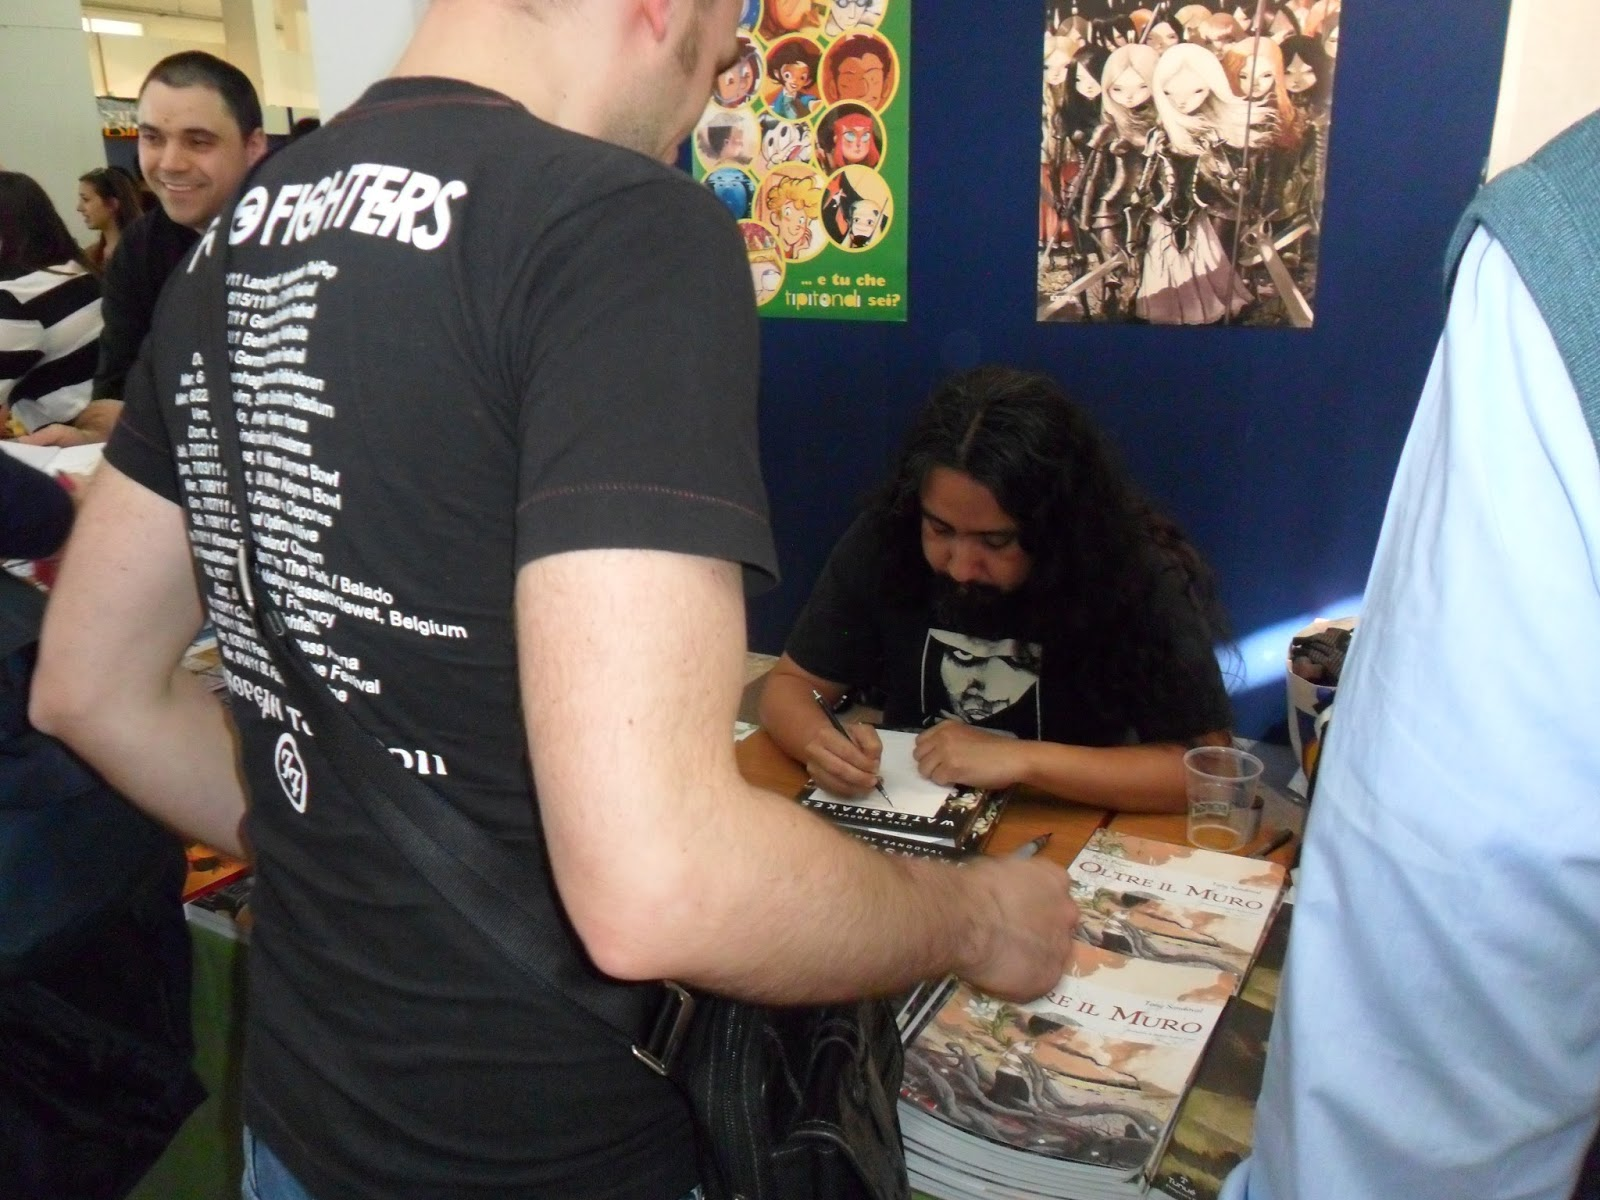 tony-sandoval-comicon-napoli-2014-fumetto-cinema-foto